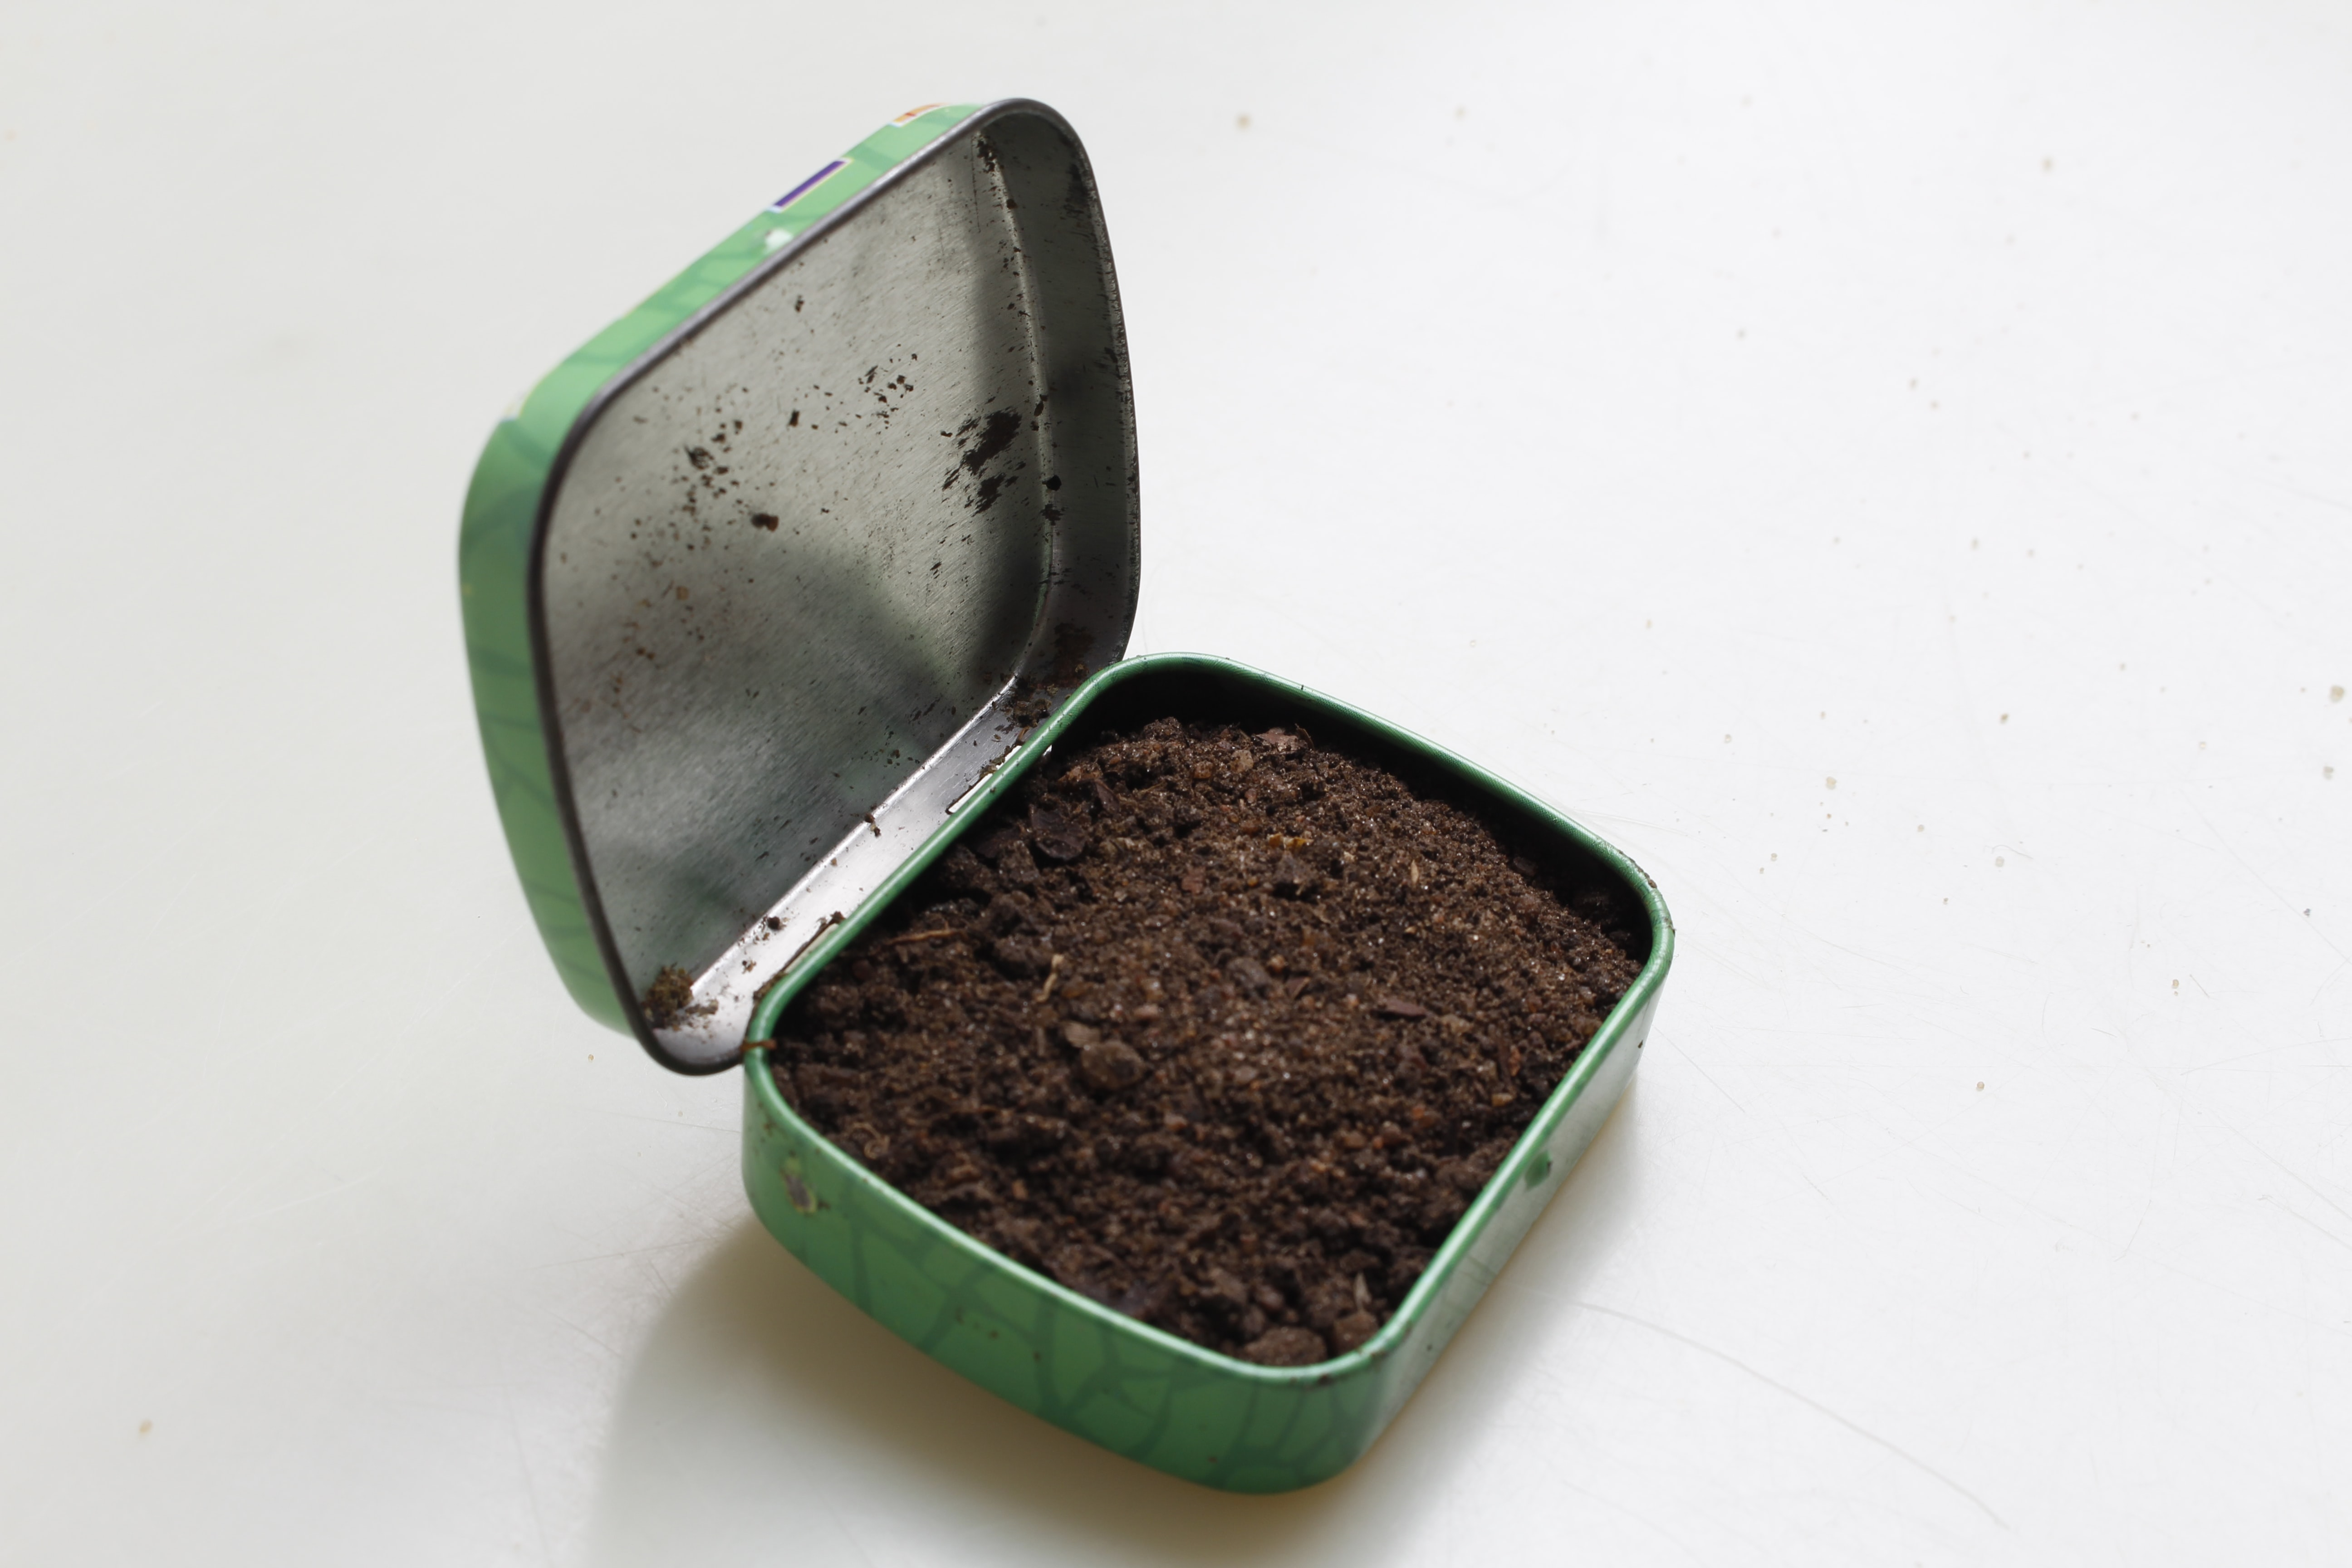 brown soil in green metal box